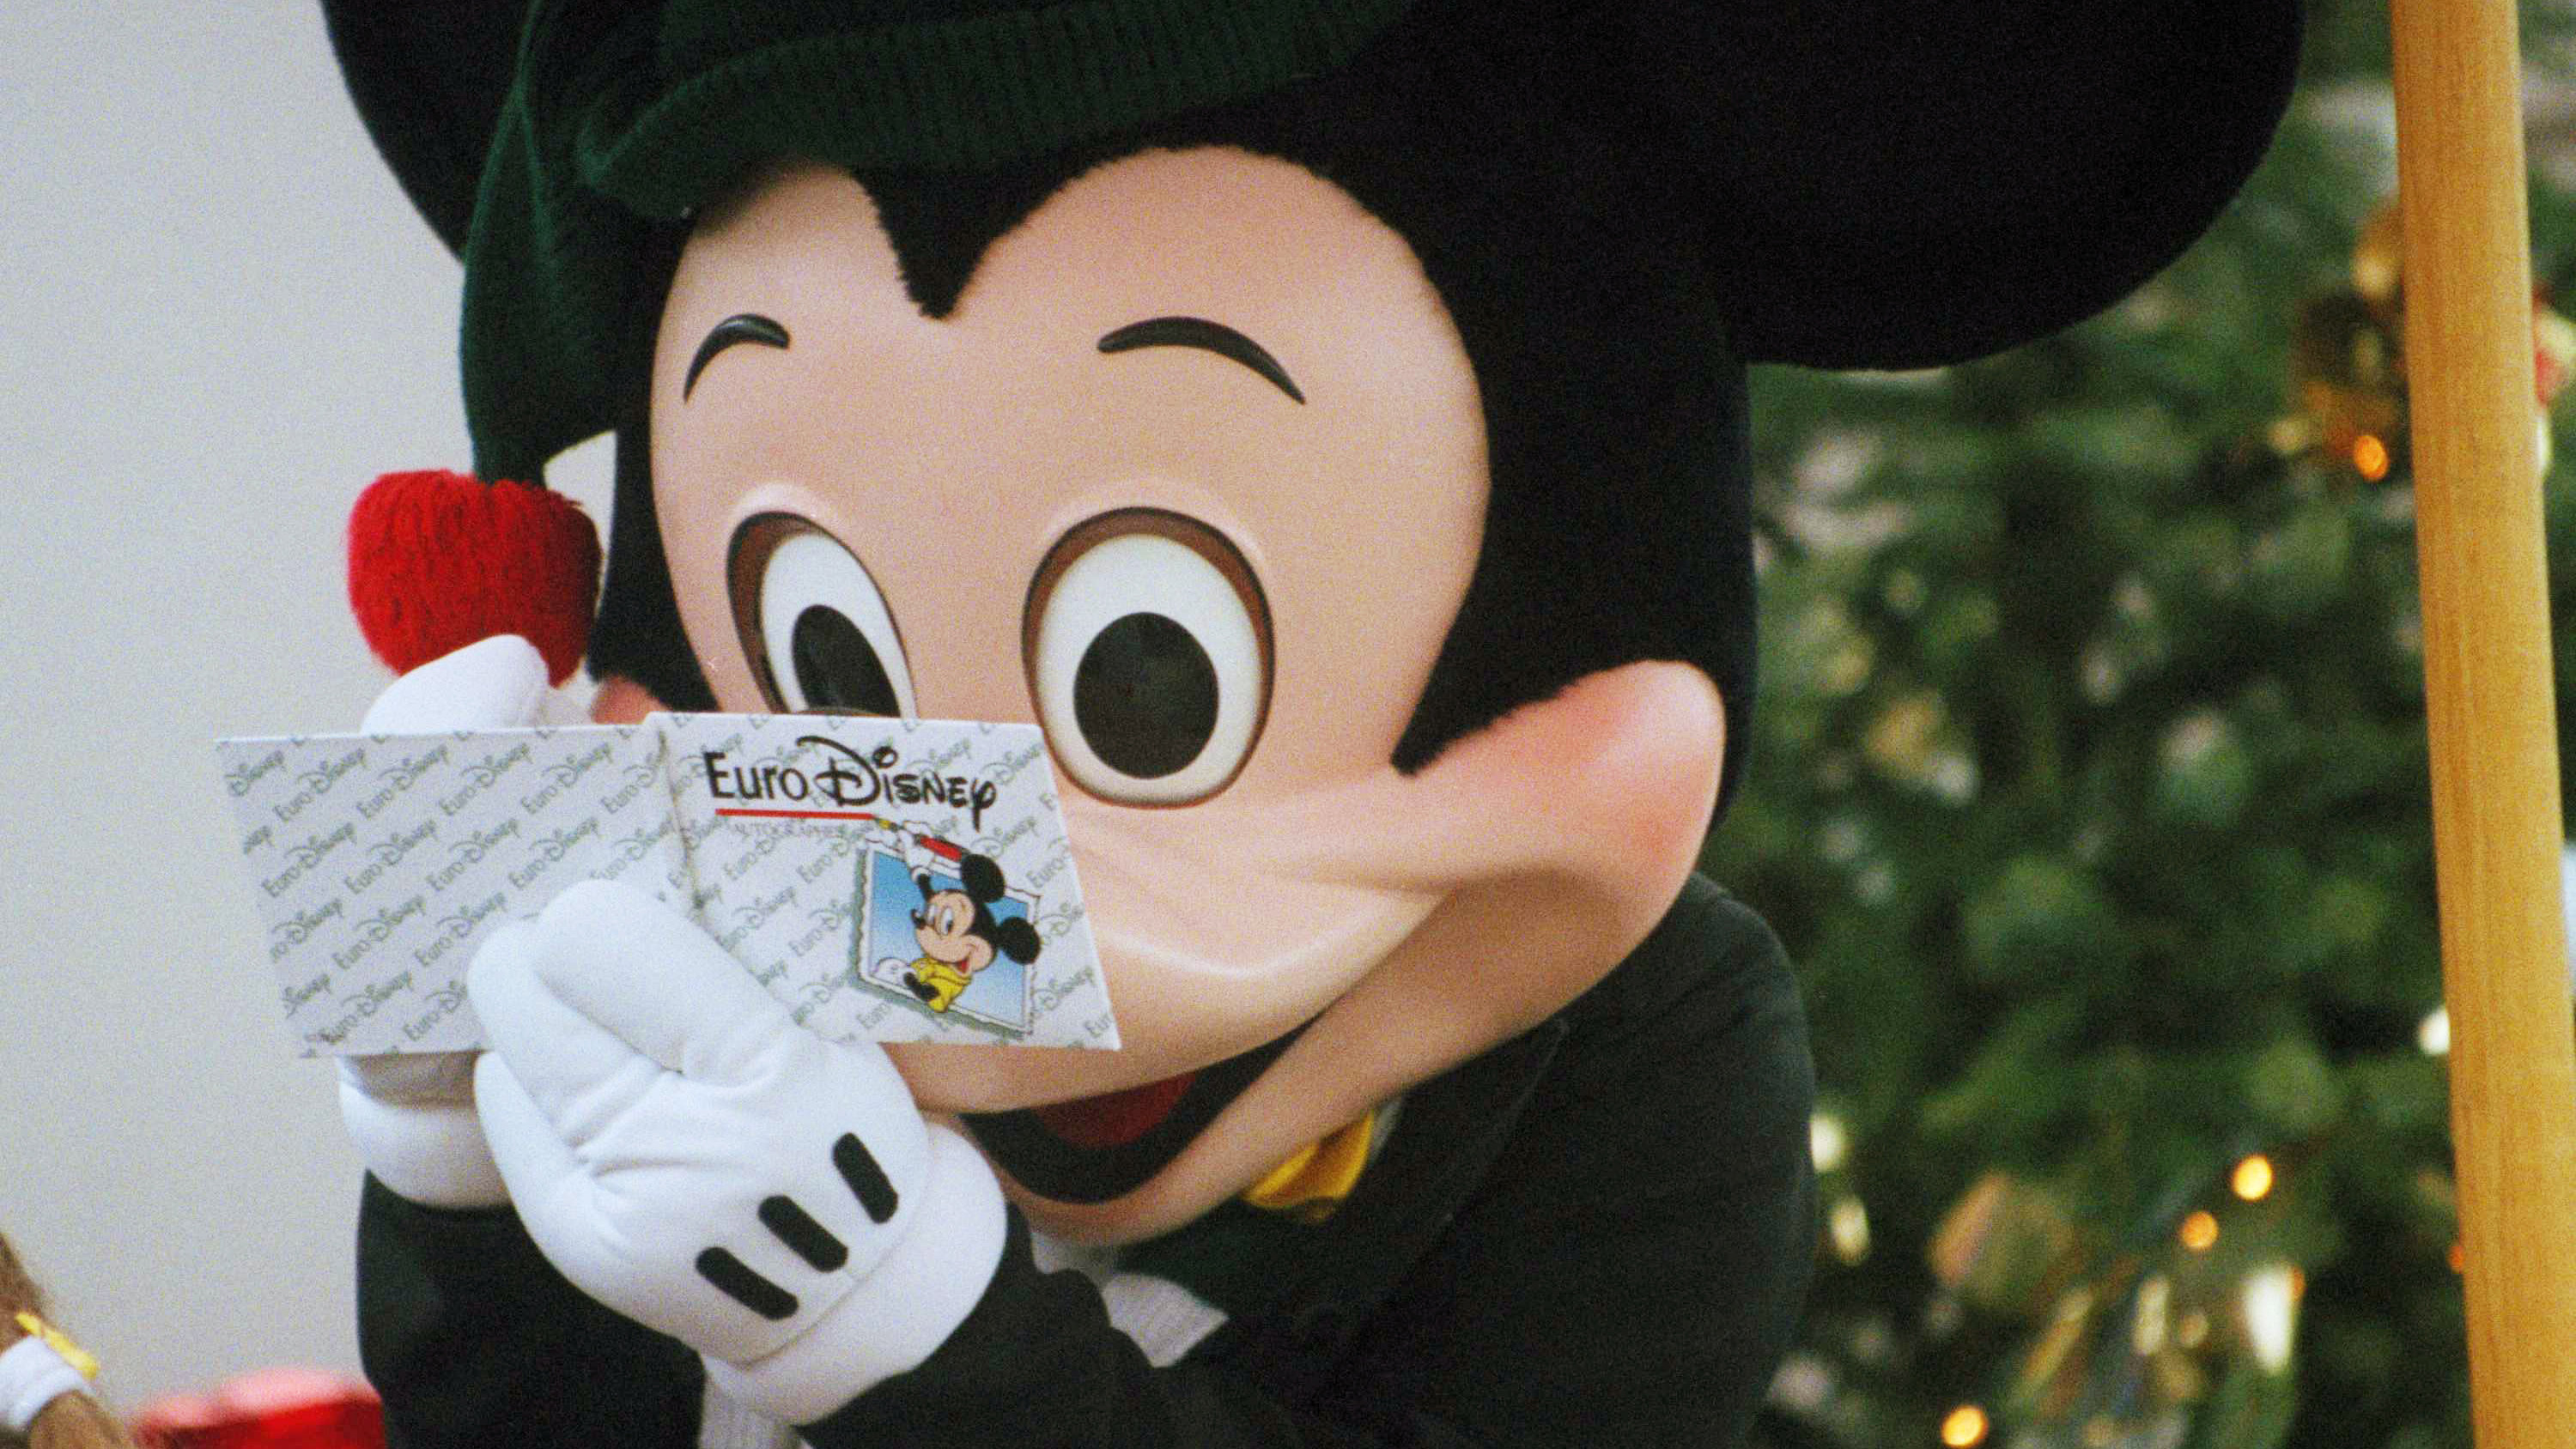 Mickey Mouse reads his schedule on a Euro Disney card during a photo opportunity at the Euro Disneyland theme park.